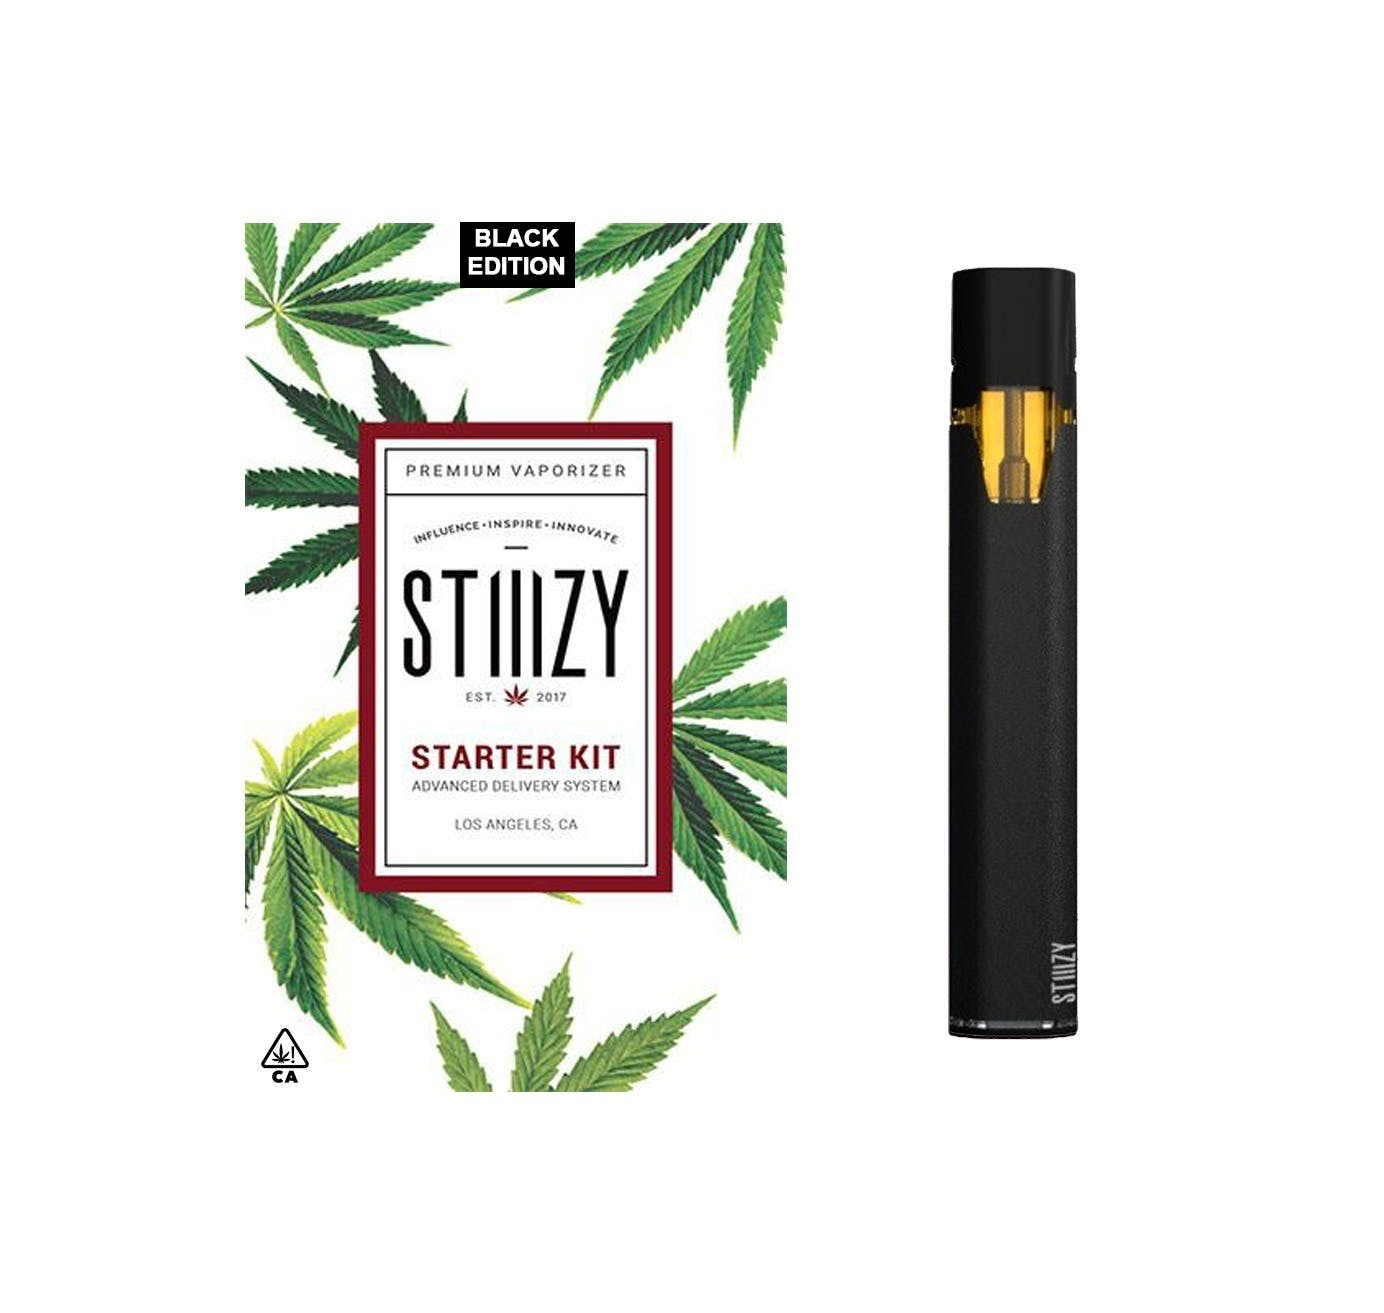 marijuana-dispensaries-hoover-greens-10g-for-2445-in-los-angeles-stiiizys-starter-kit-black